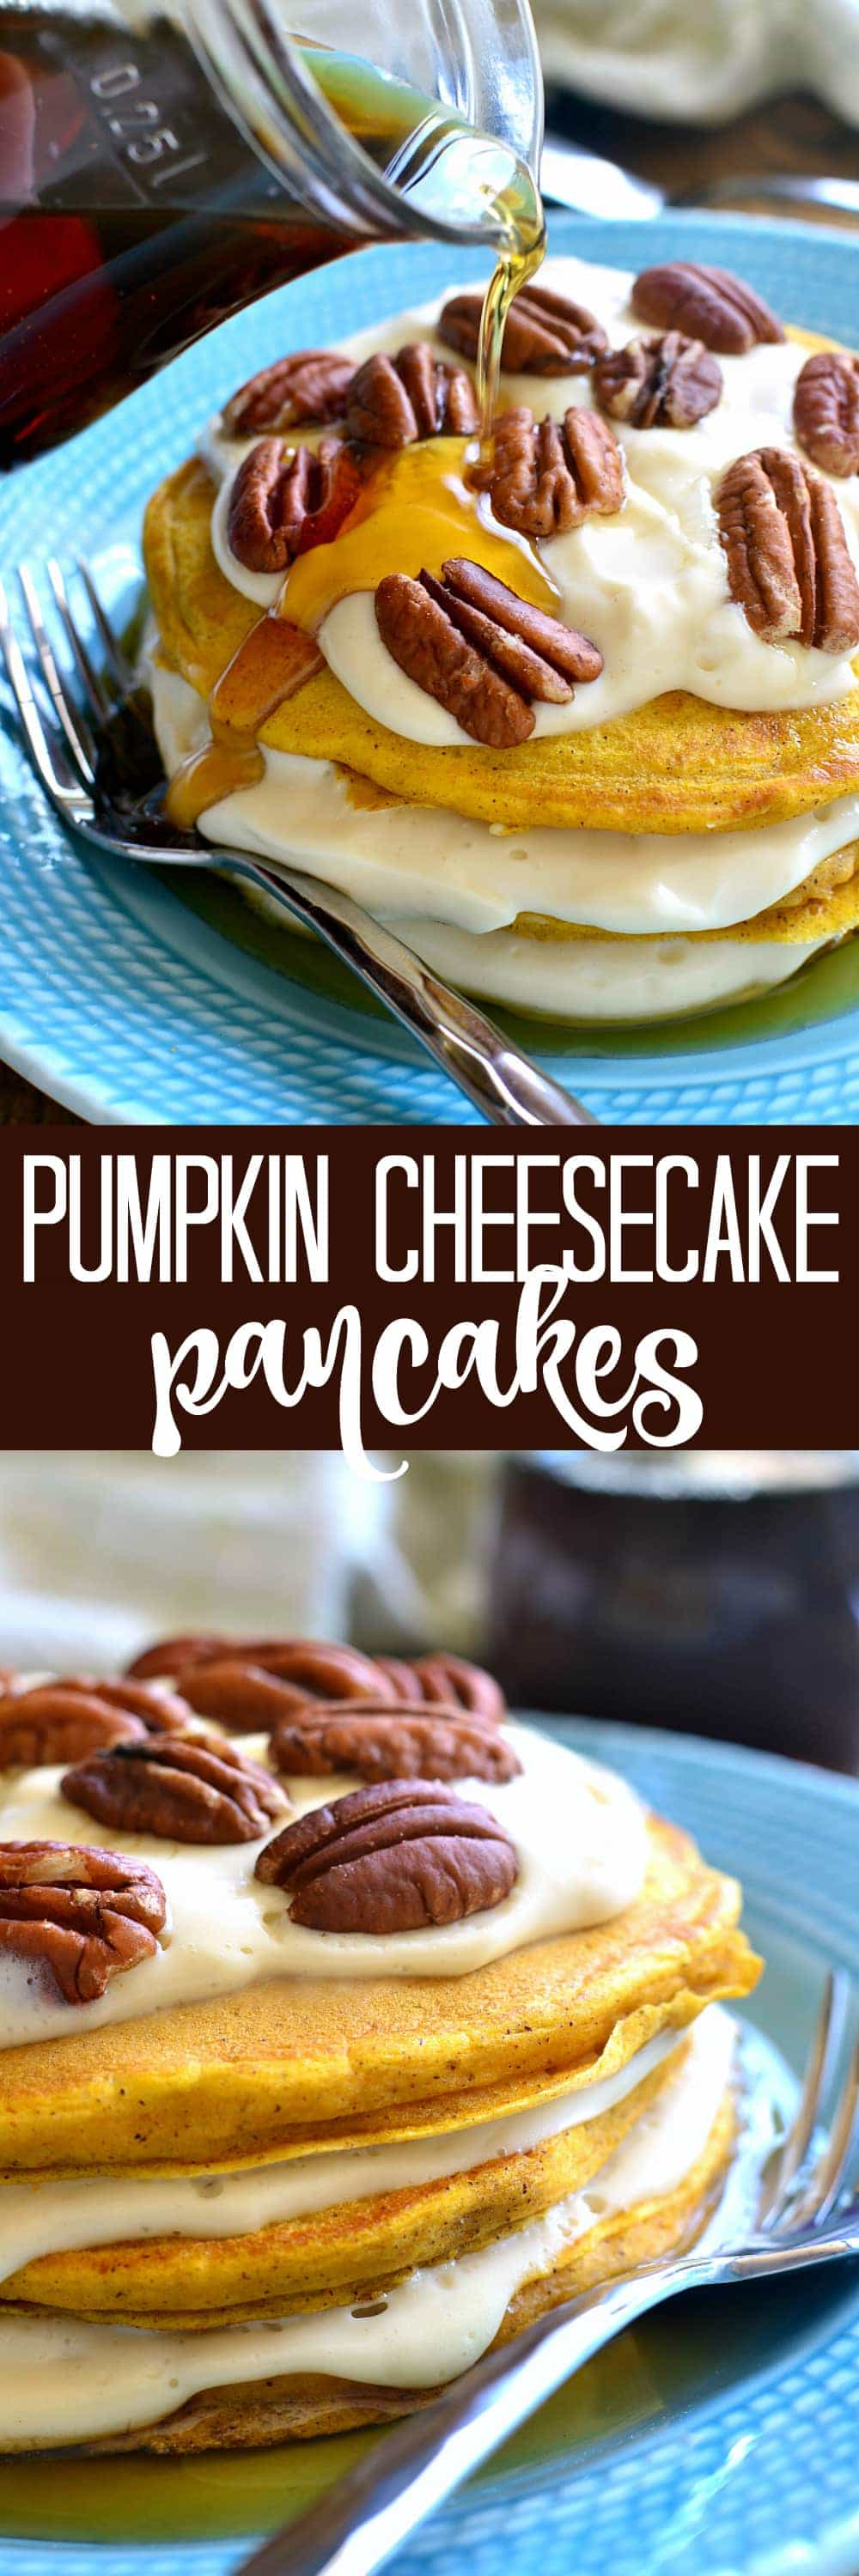 These Pumpkin Cheesecake Pancakes are sure to become your new favorite breakfast treat! Made with real pumpkin and layered with an easy no-bake maple cheesecake filling, they're sweet, flavorful, and perfect for fall!